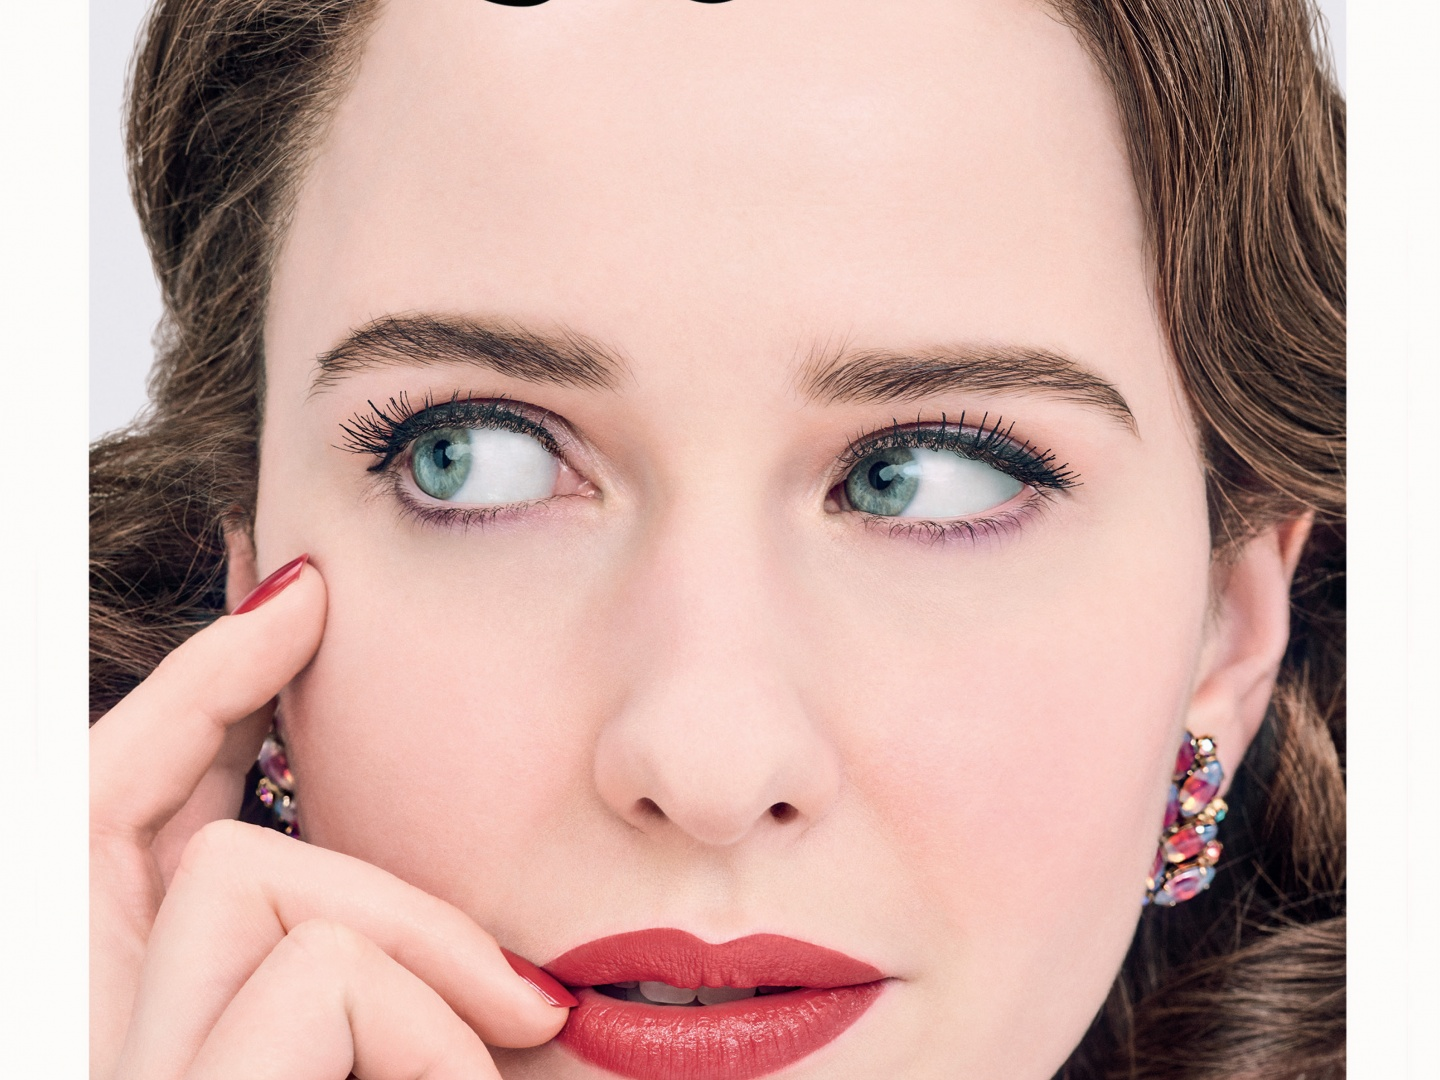 The Marvelous Mrs. Maisel Magazine Cover Takeover (New York Magazine) Thumbnail